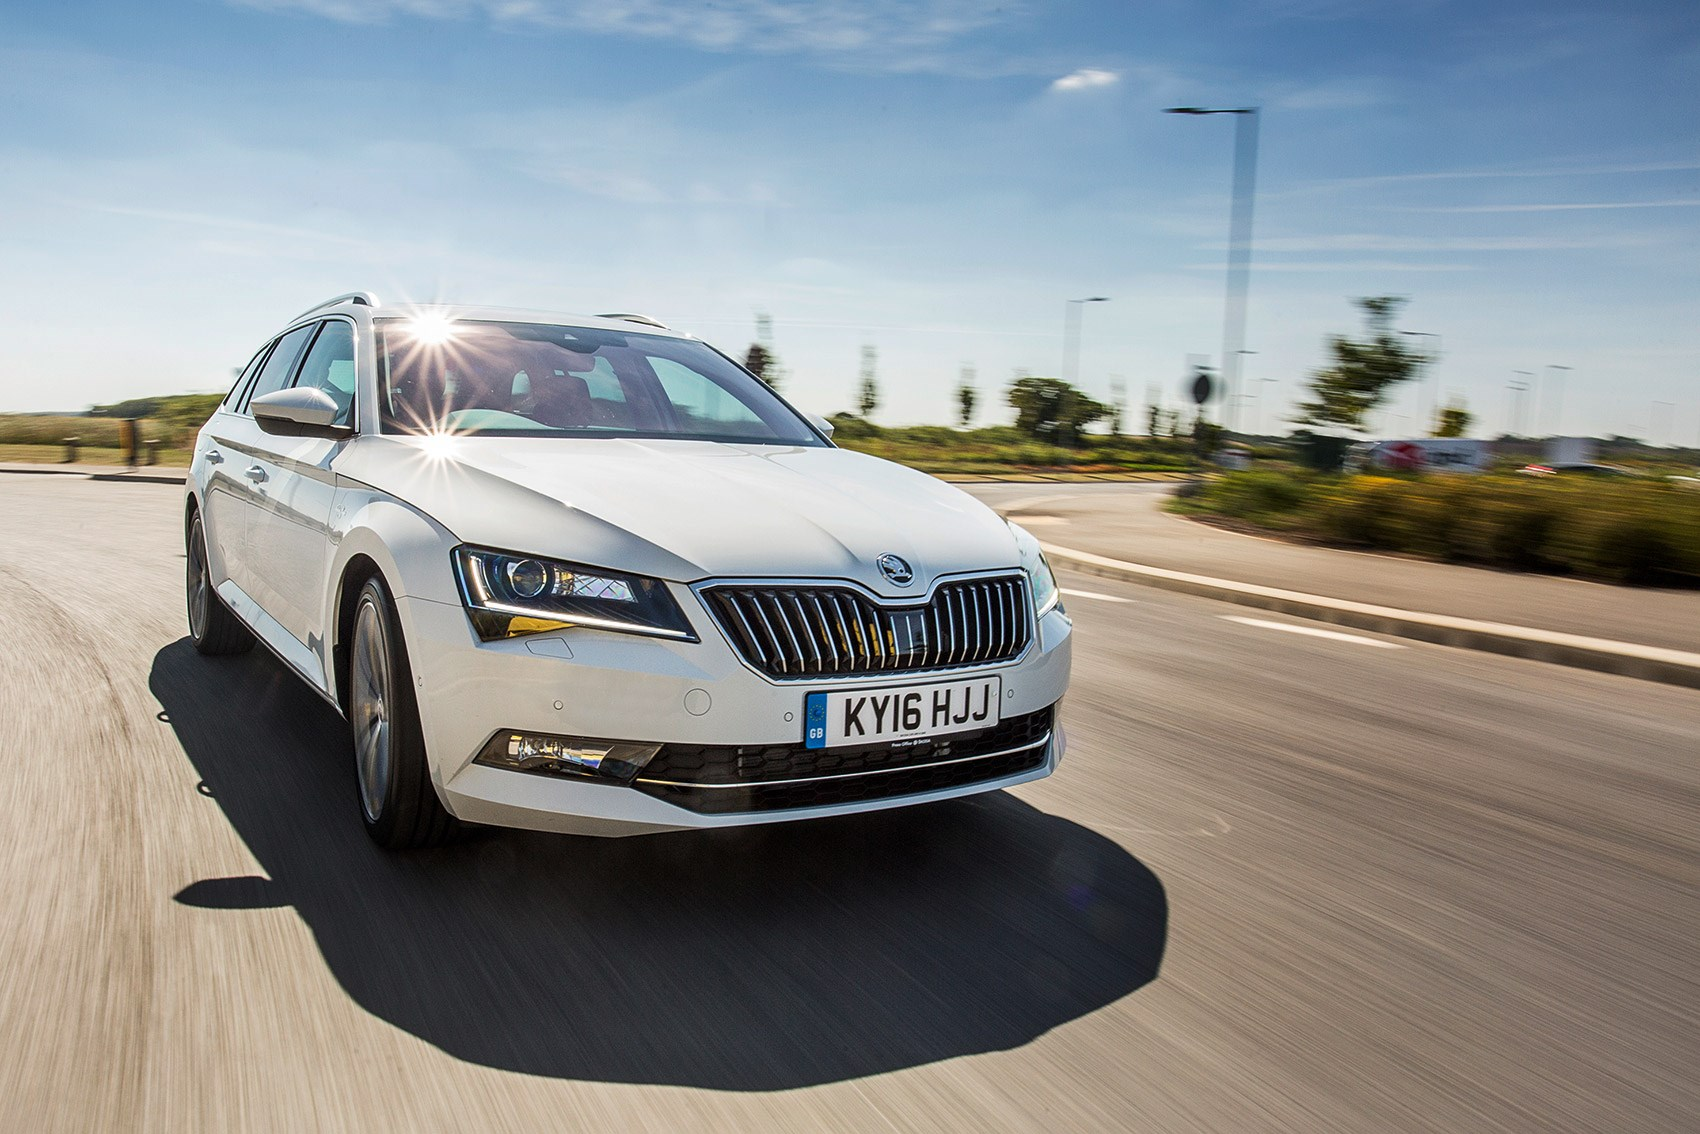 Skoda superb estate 1 4 tsi review autocar - Skoda Superb Estate 280 Something Of A Dichotomy